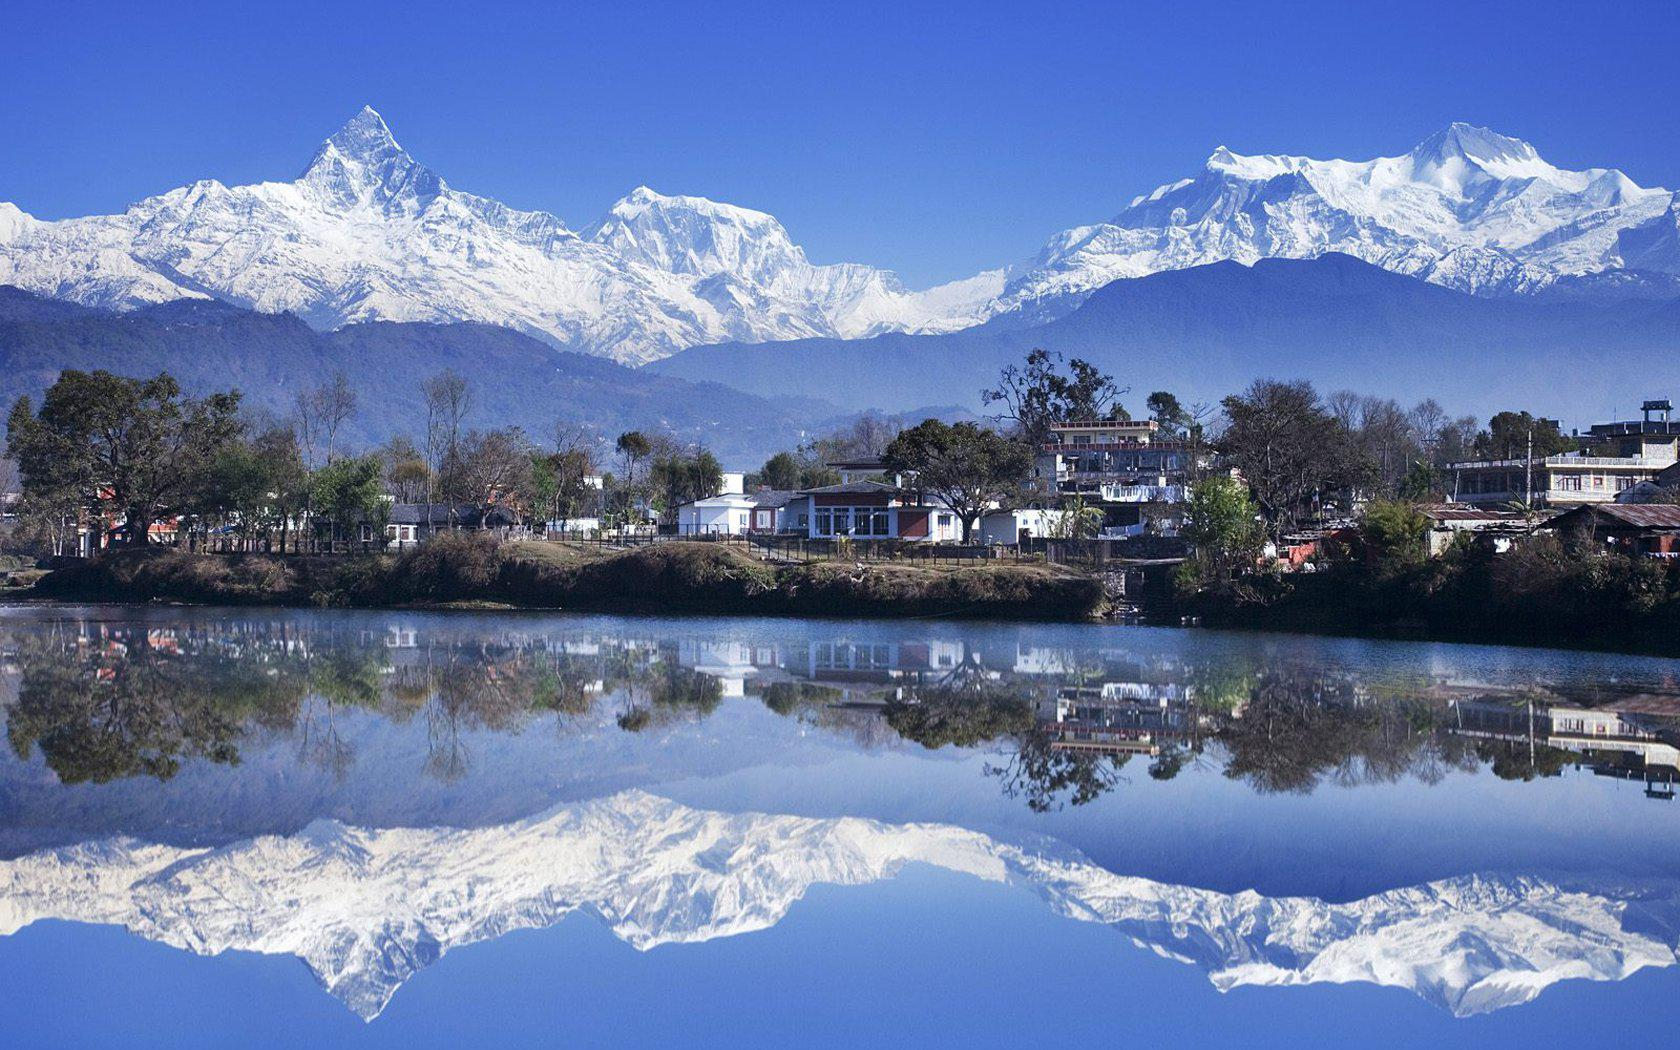 wallpaper-landscape-fewa-lake-valley-pokhara-nepal